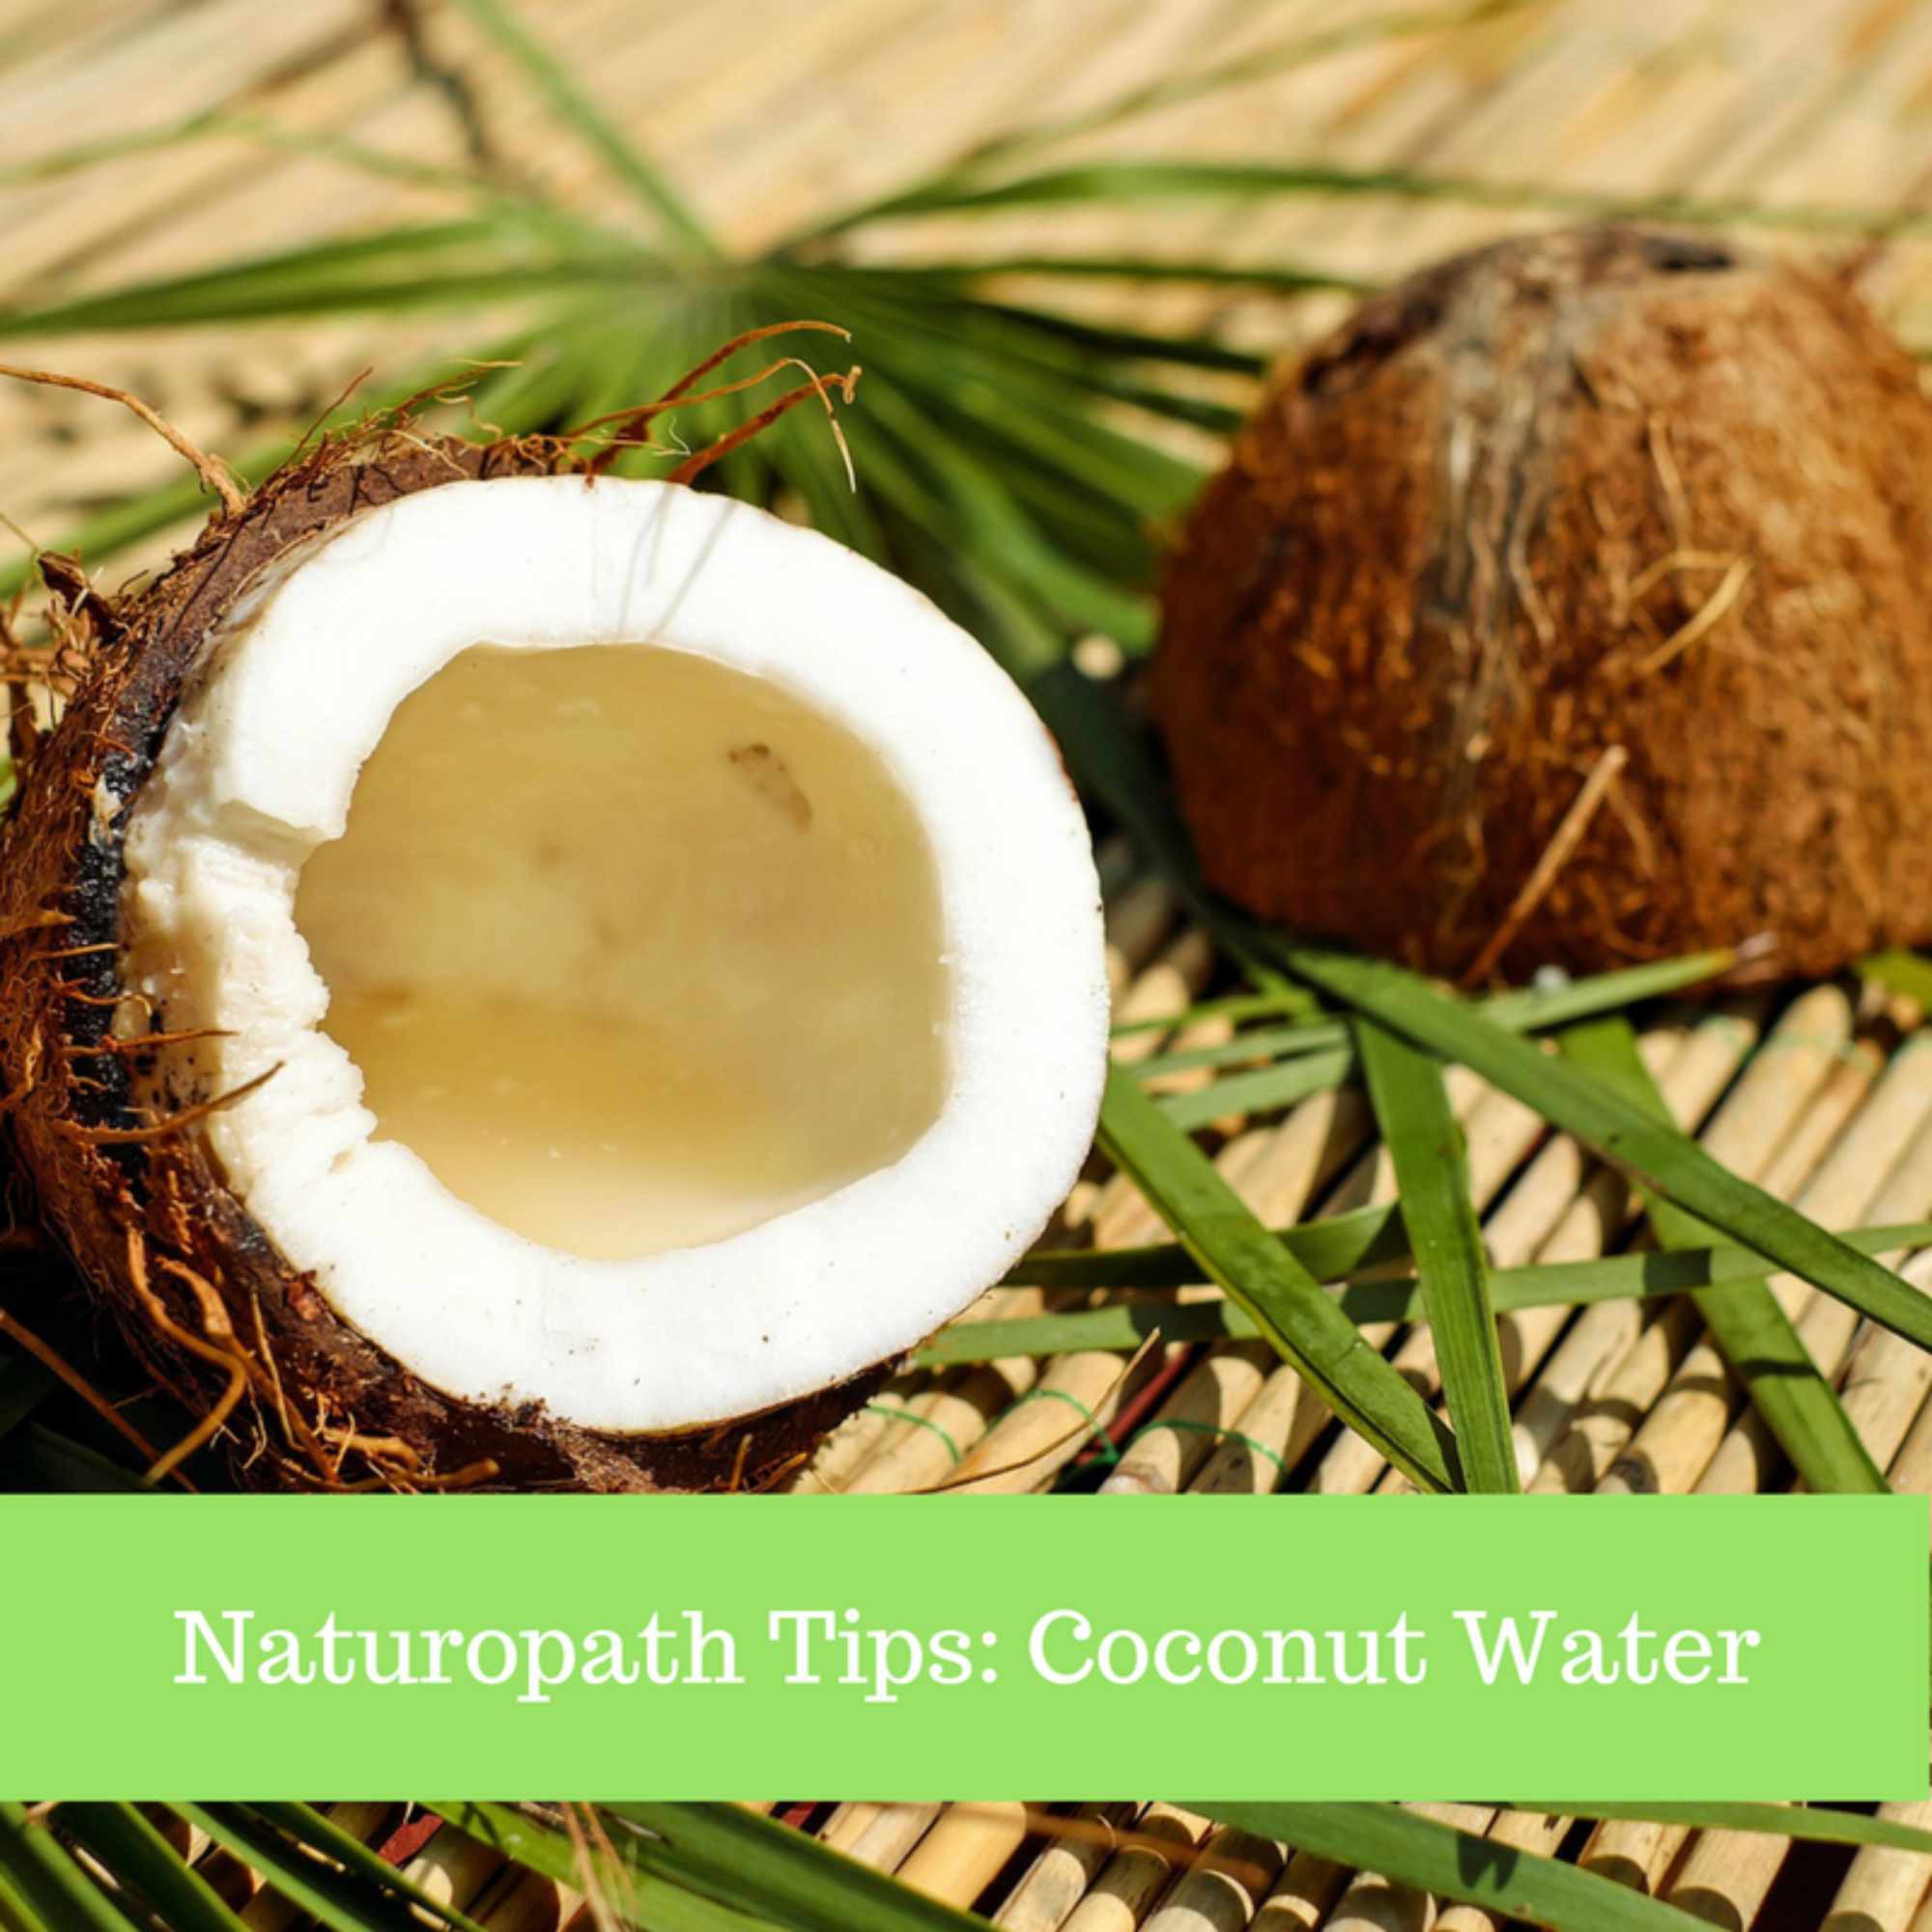 Naturopath Tip: Why you should replace sugary sports drinks with coconut water.